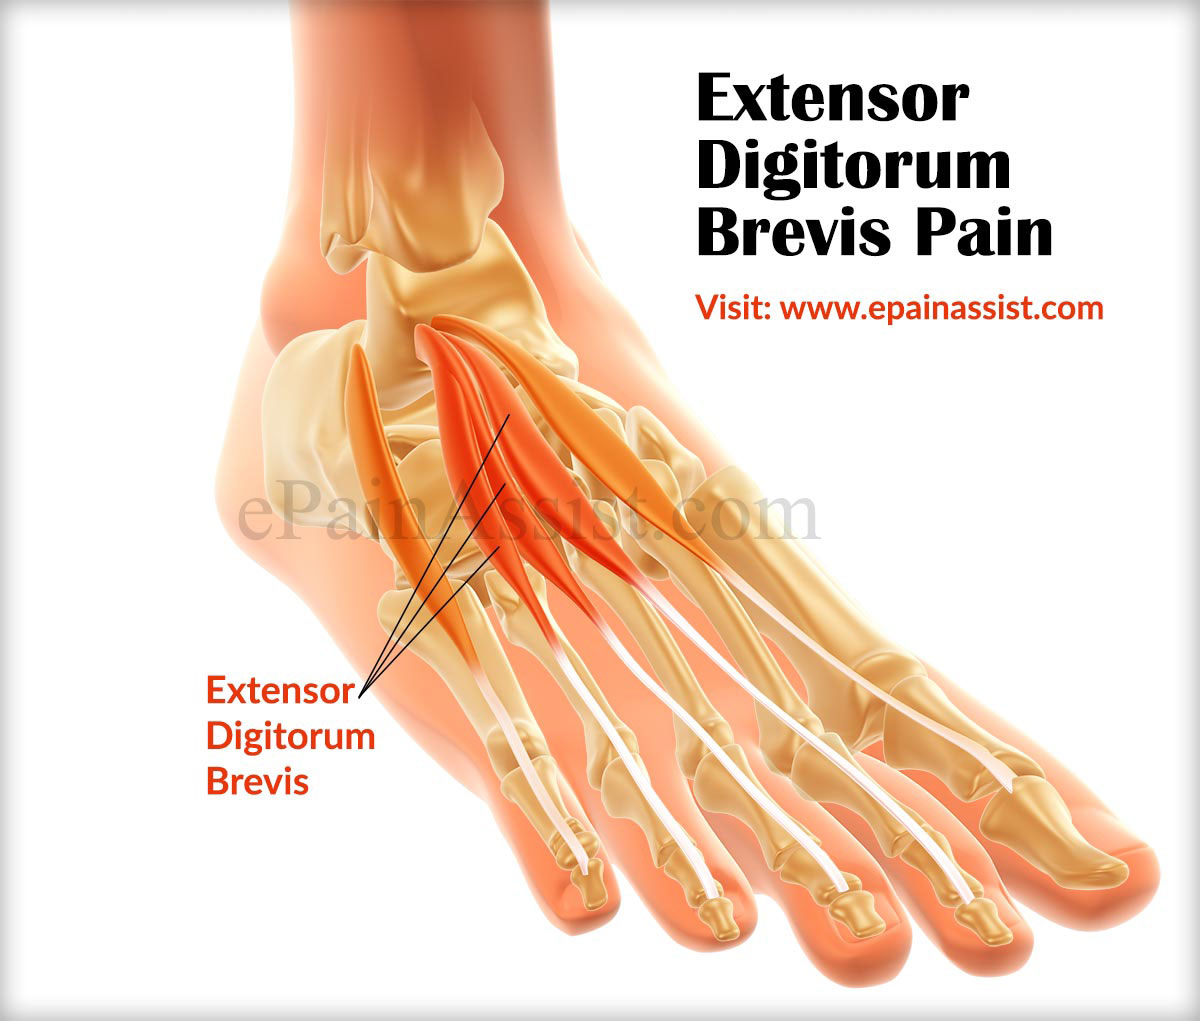 Extensor Digitorum Brevis Pain|Causes|Symptom|Treatment